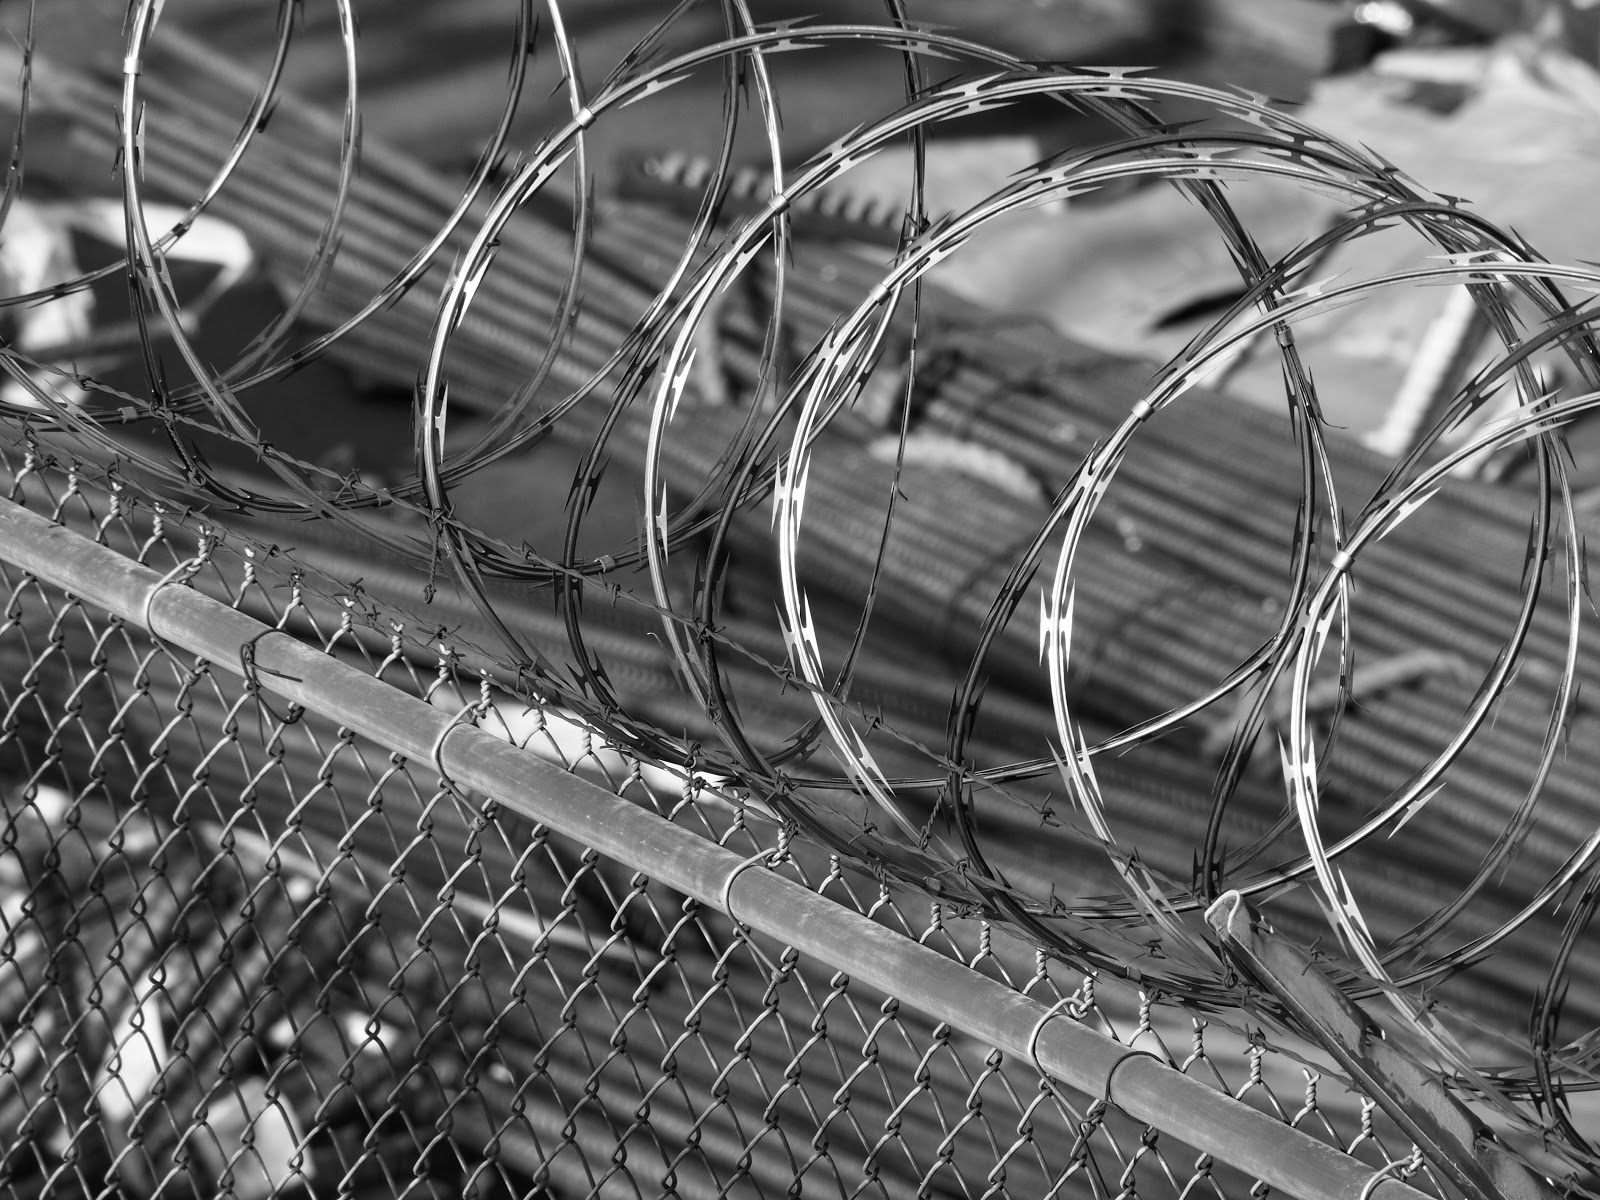 Barbed Wire #barbedwire #construction #hudsonyards #NYC #highline #blackandwhite ©2014 Nancy Lundebjerg